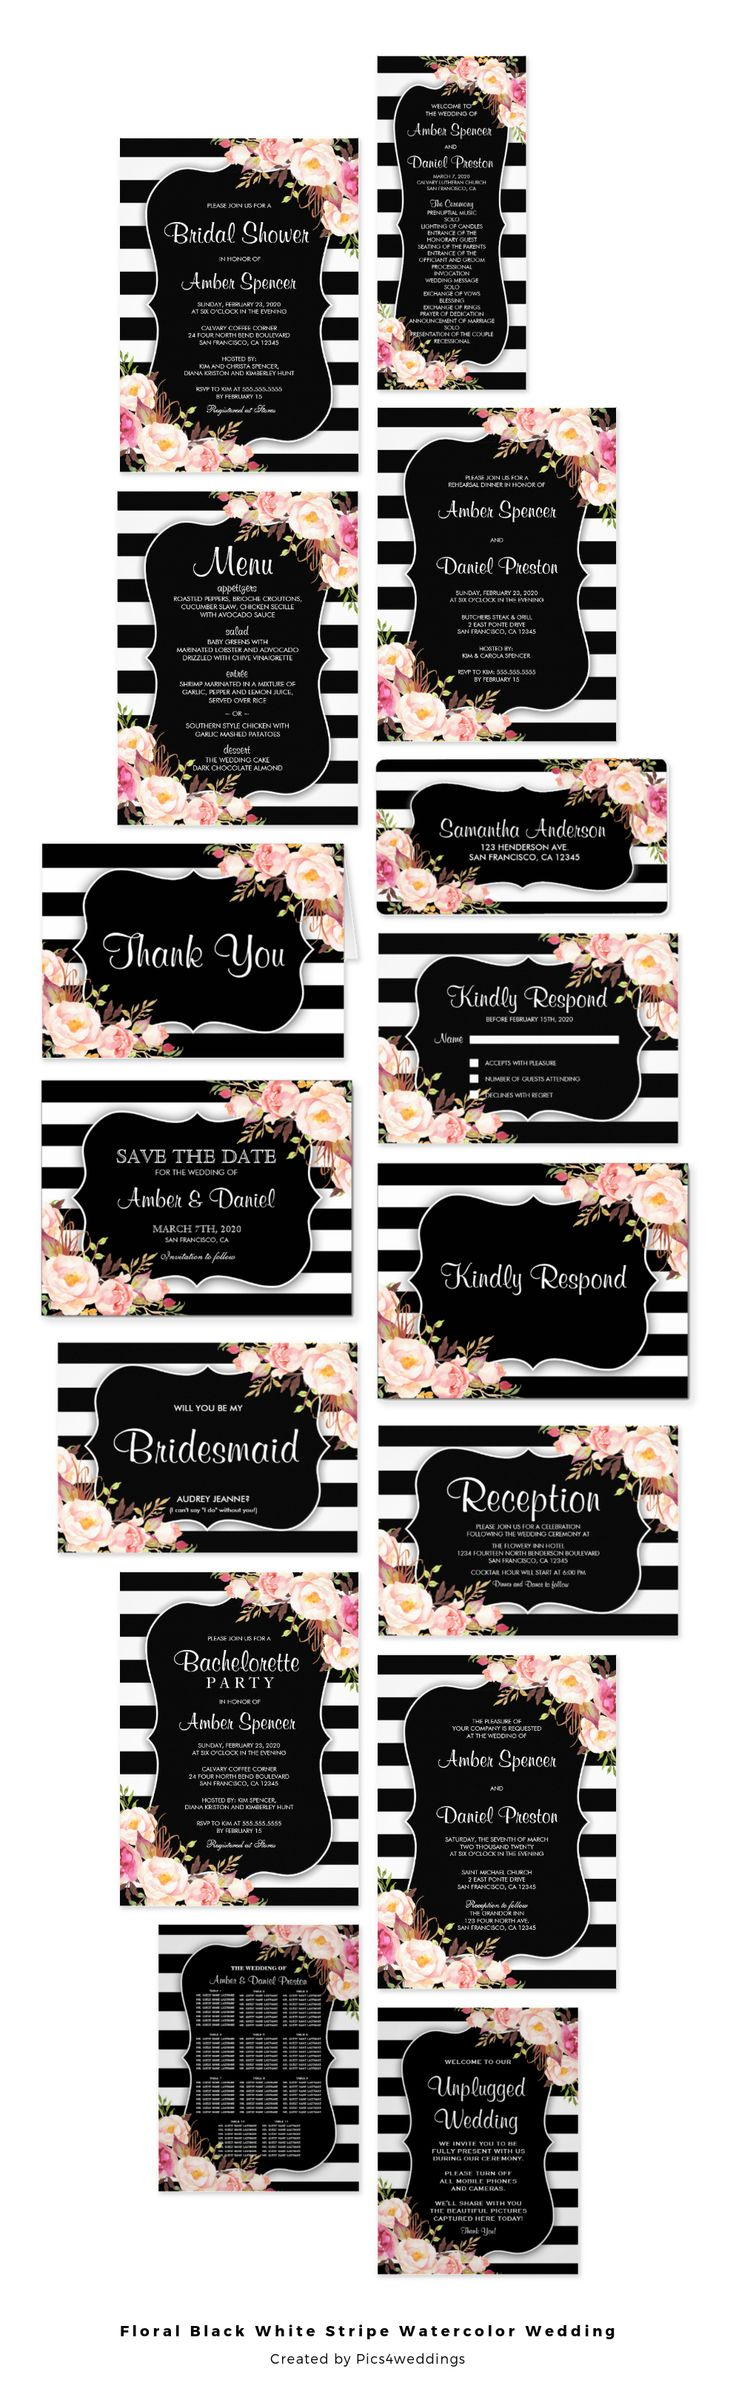 funny wedding invitation rsvp goes viral%0A An elegant floral black and white stripe wedding invitation set  featuring  pretty pink watercolor flowers